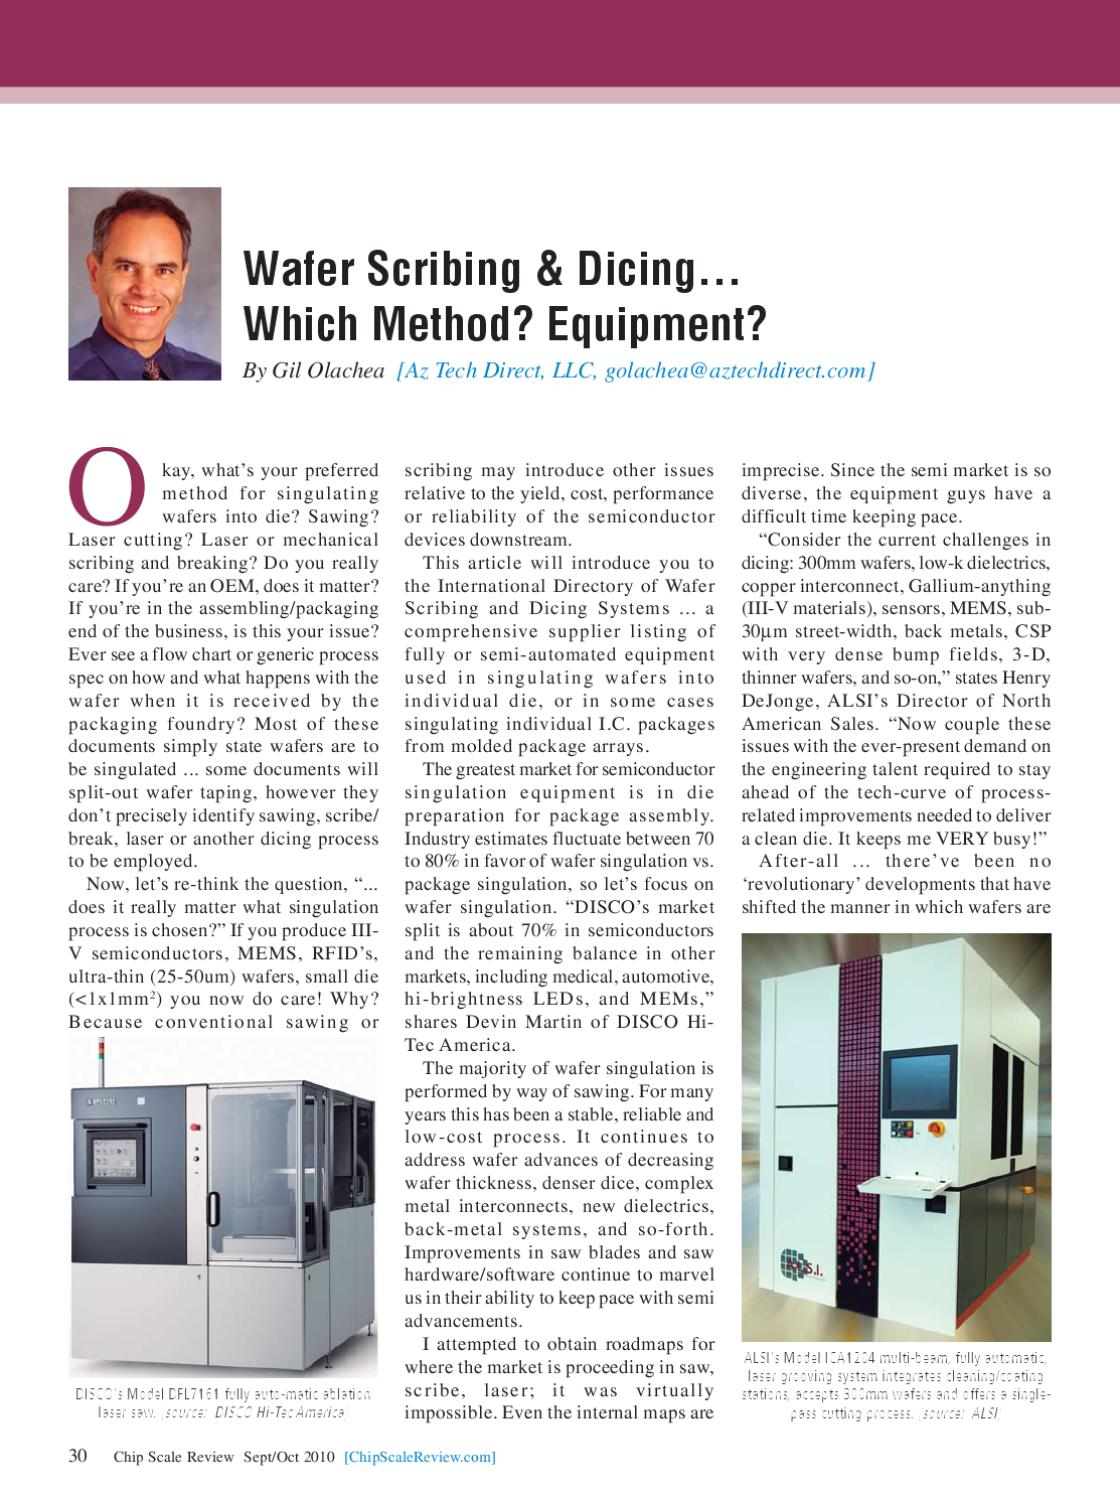 Chip Scale Review Magazine - Sep-Oct 2010 by Lawrence Michaels - issuu